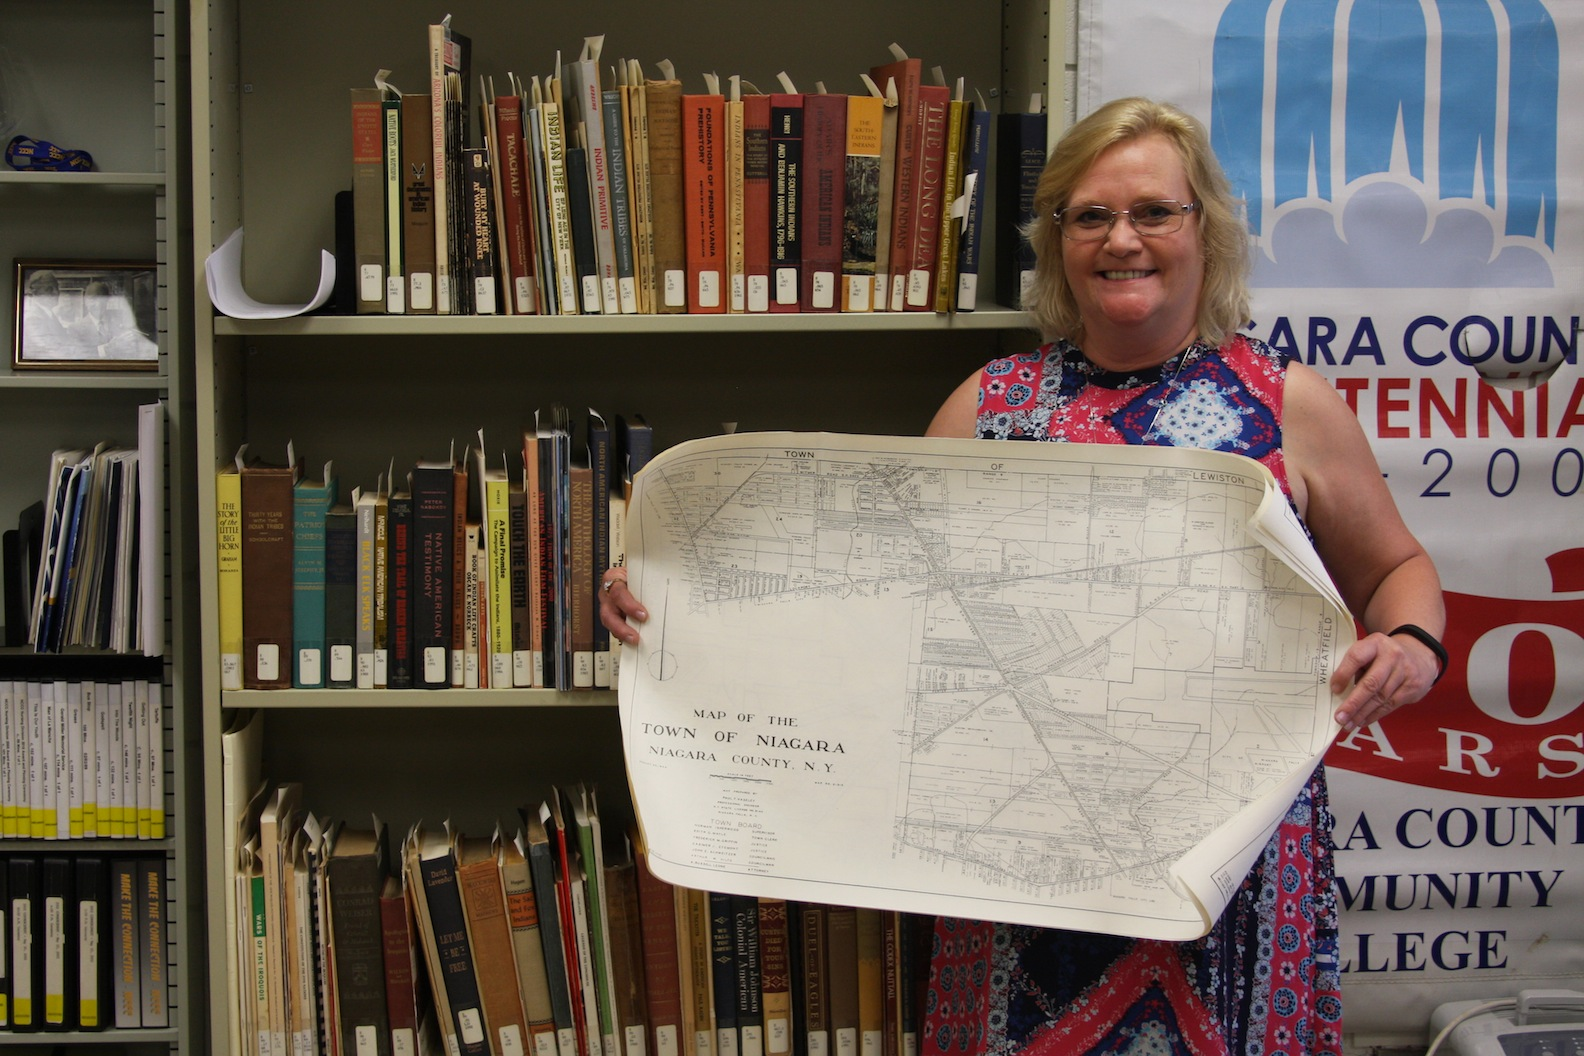 NCCC Library employee, Barbara Rupple pictured with a map of the Town of Niagara.